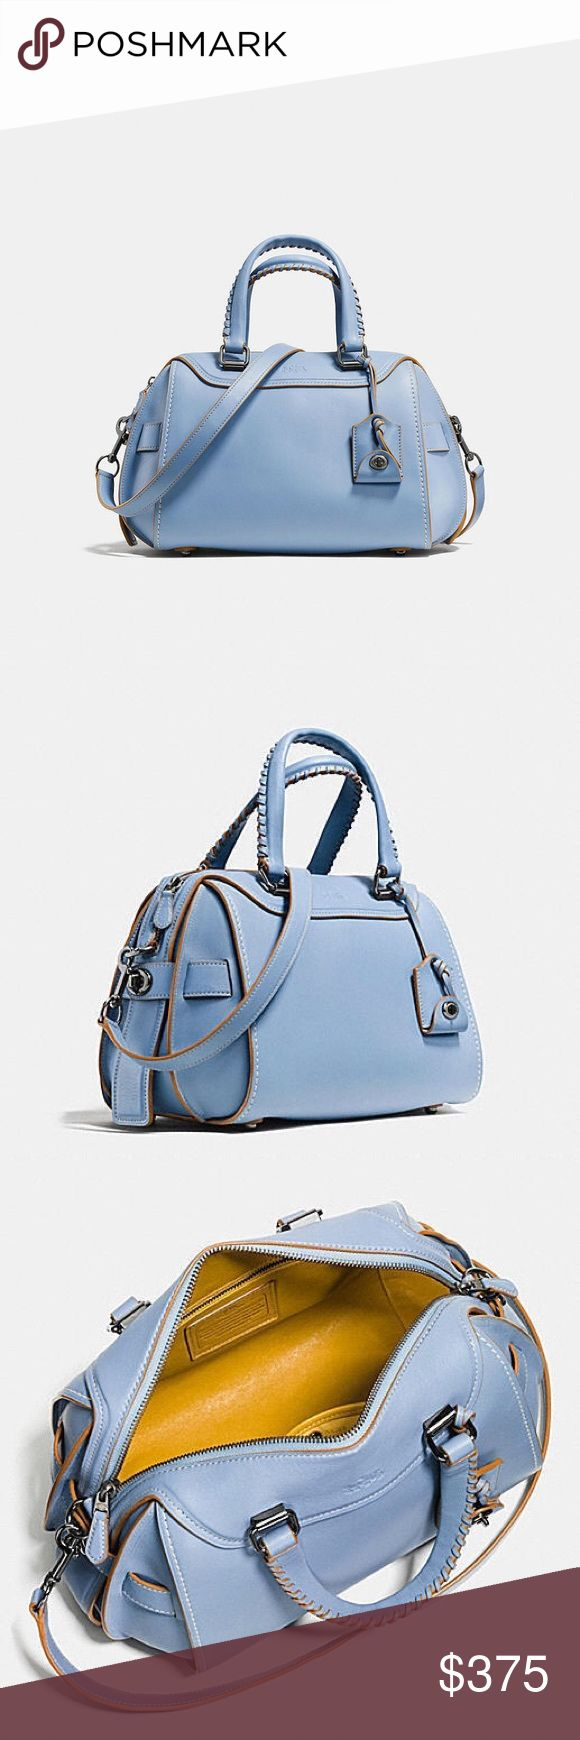 "COACH ACE SATCHEL HANDBAG IN CORNFLOWER BLUE 37212 COACH ACE SATCHEL PURSE IN CORNFLOWER BLUE GLOVE TANNED LEATHER WITH HANDPAINTED EDGING AND LEATHER INTERIOR!  One of a Kind 75th Anniversary Limited Edition  STYLE #: 37212  MEASURES:  14 1/4"" (L) 9 1/4"" (H) X 7 3/4"" (W)  MSRP $595  This bag has never been used and will come with the dust bag. It's a beautiful purse, but the color isn't my style so I'm hoping it will find a good home. There's a reason why so many celebrities love this bag…"